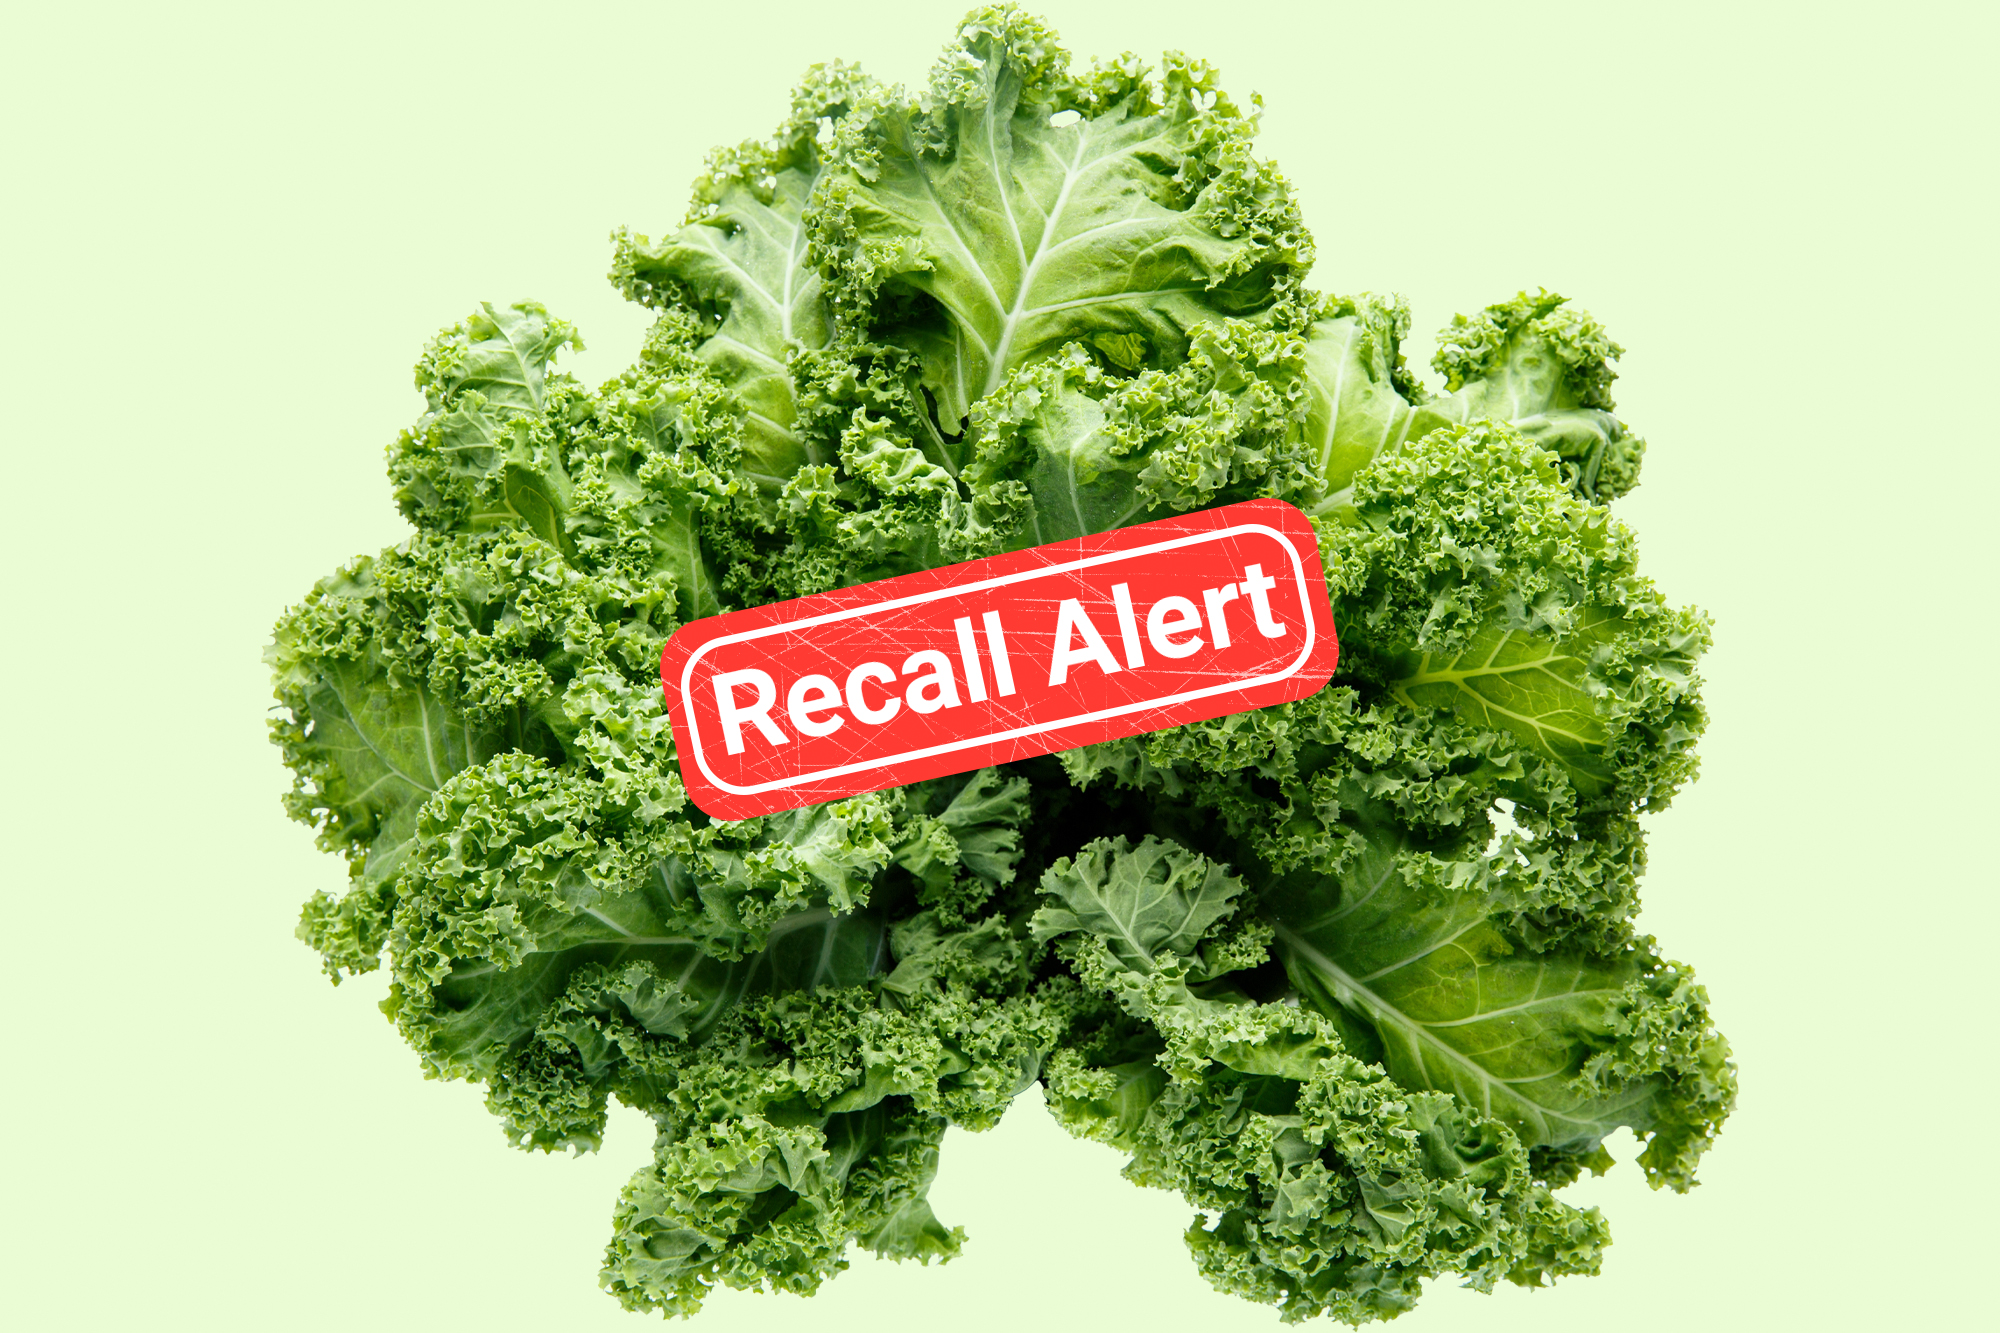 A photo of kale on a green background with a red recall alert over it